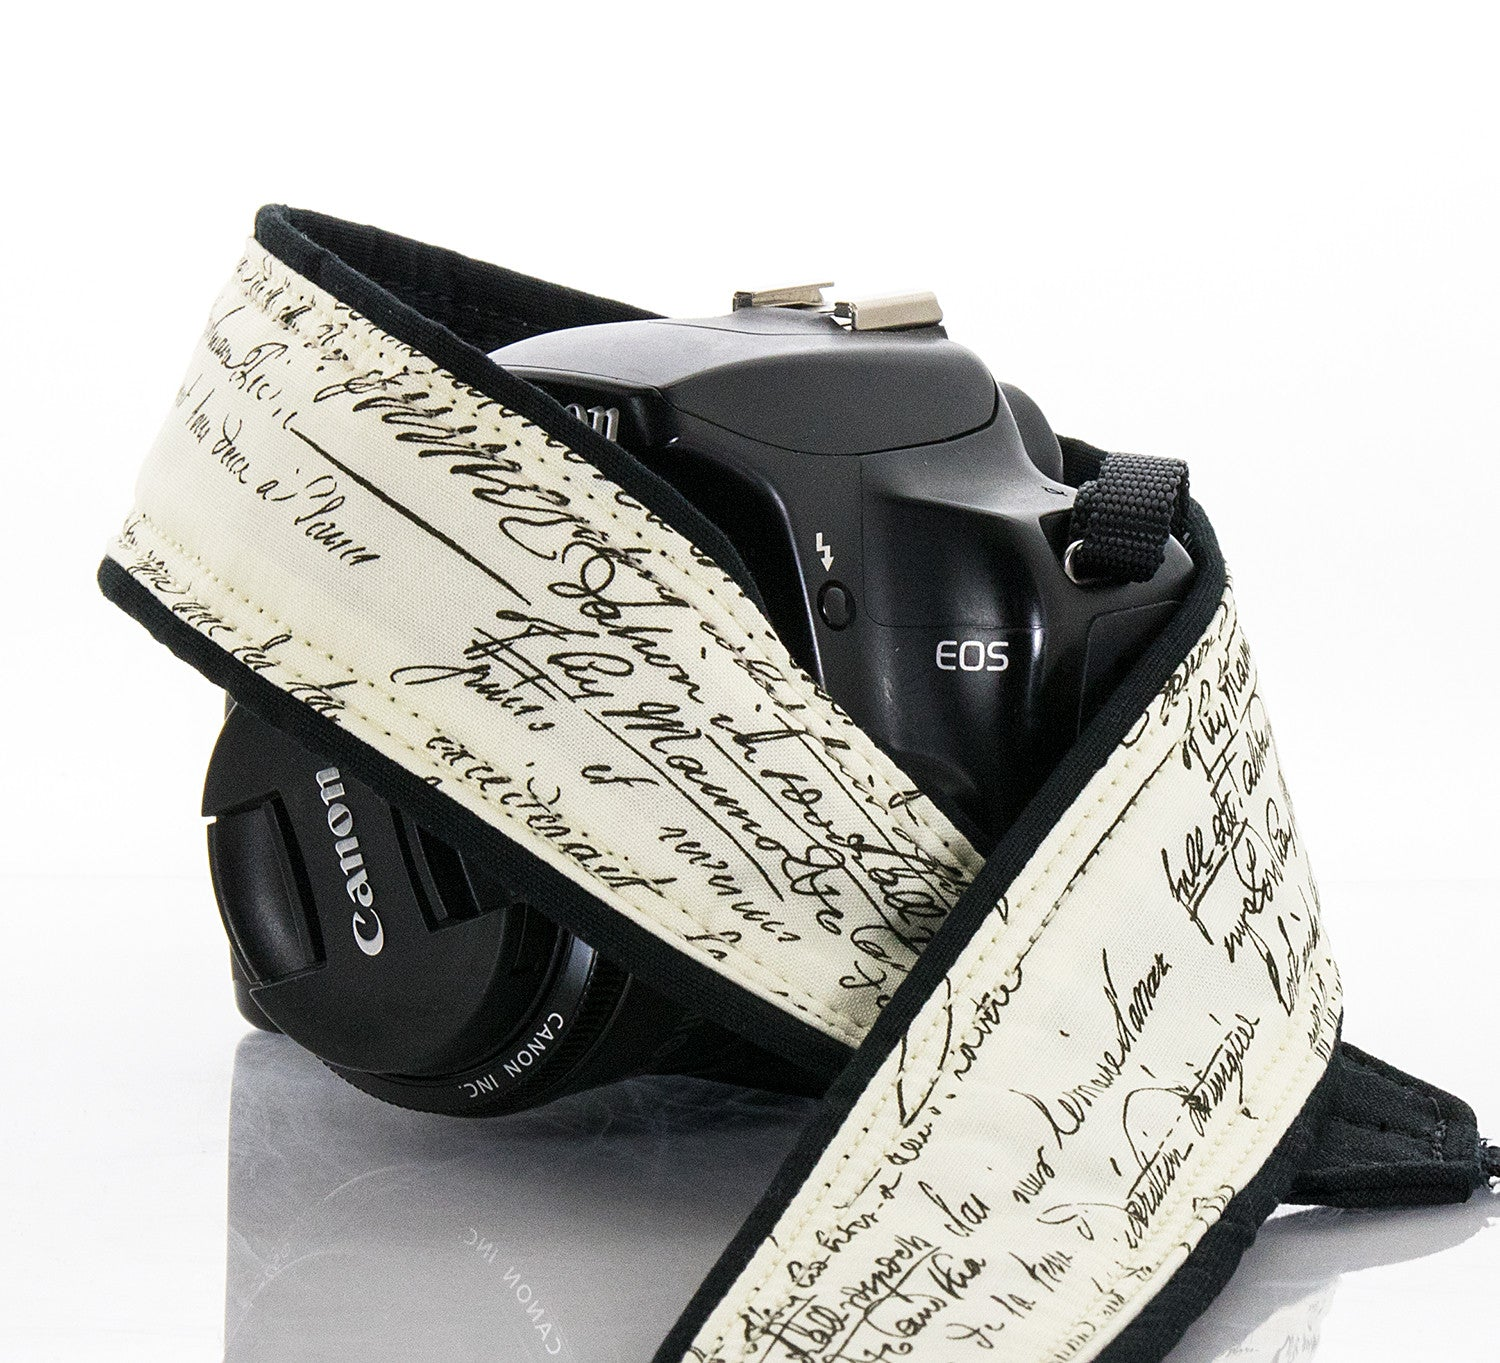 Old Script Camera Strap, dSLR, SLR or Mirrorless - ten8e Camera Straps